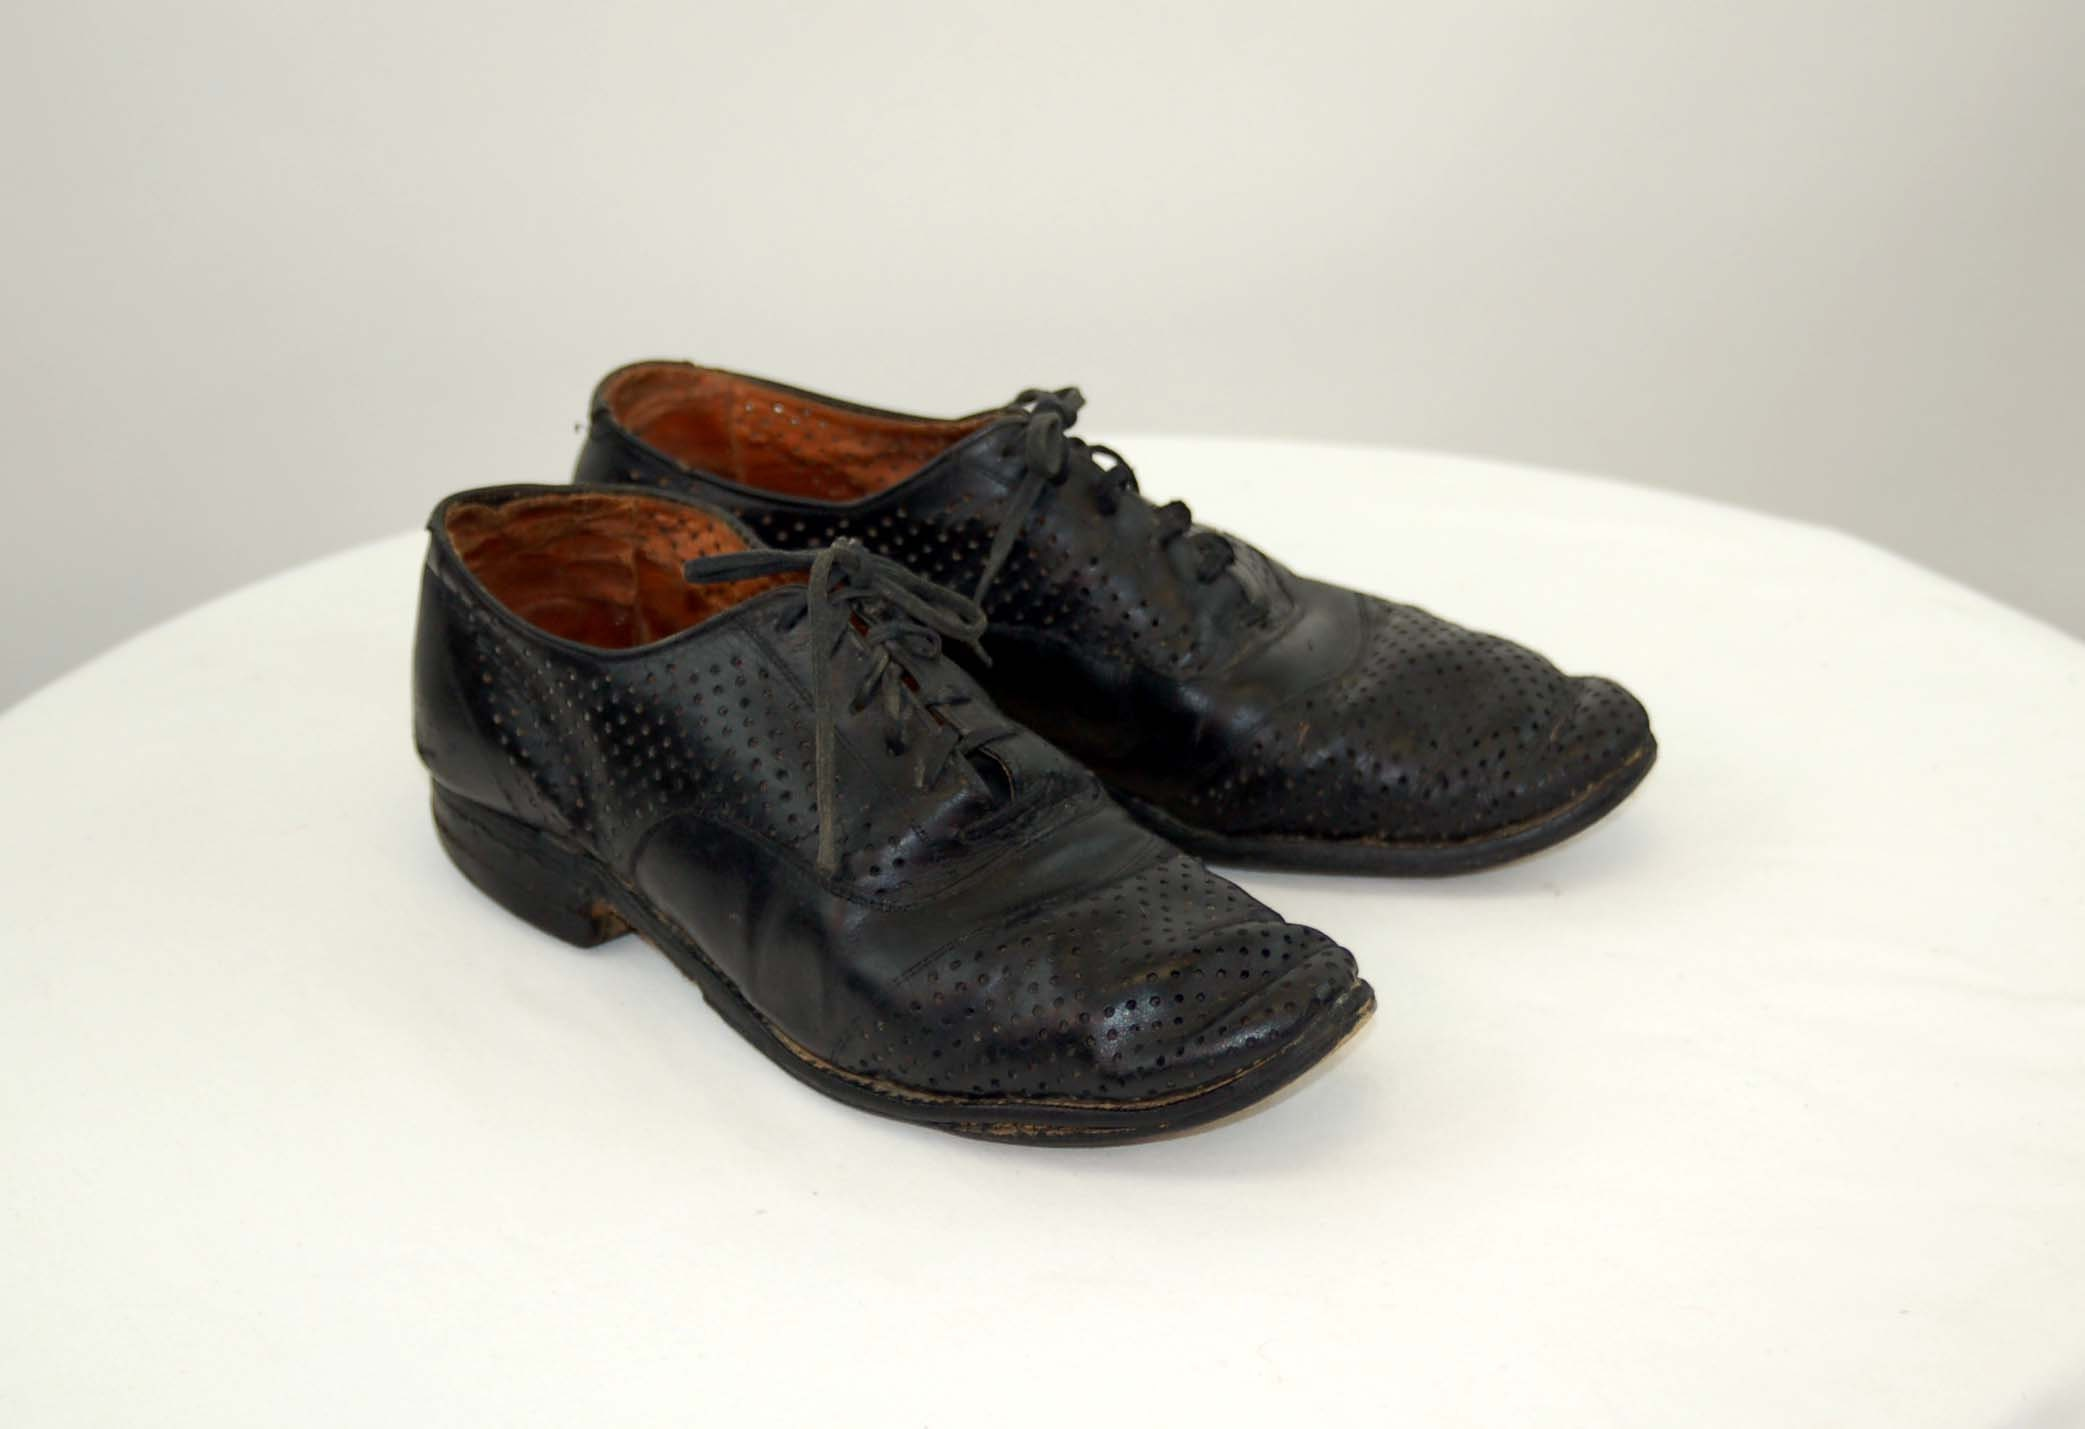 New 1930s Mens Fashion Ties 1930S Black Leather Oxford Shoes Perforated Spectator Size 8 Womens 6.5 Mens $0.00 AT vintagedancer.com